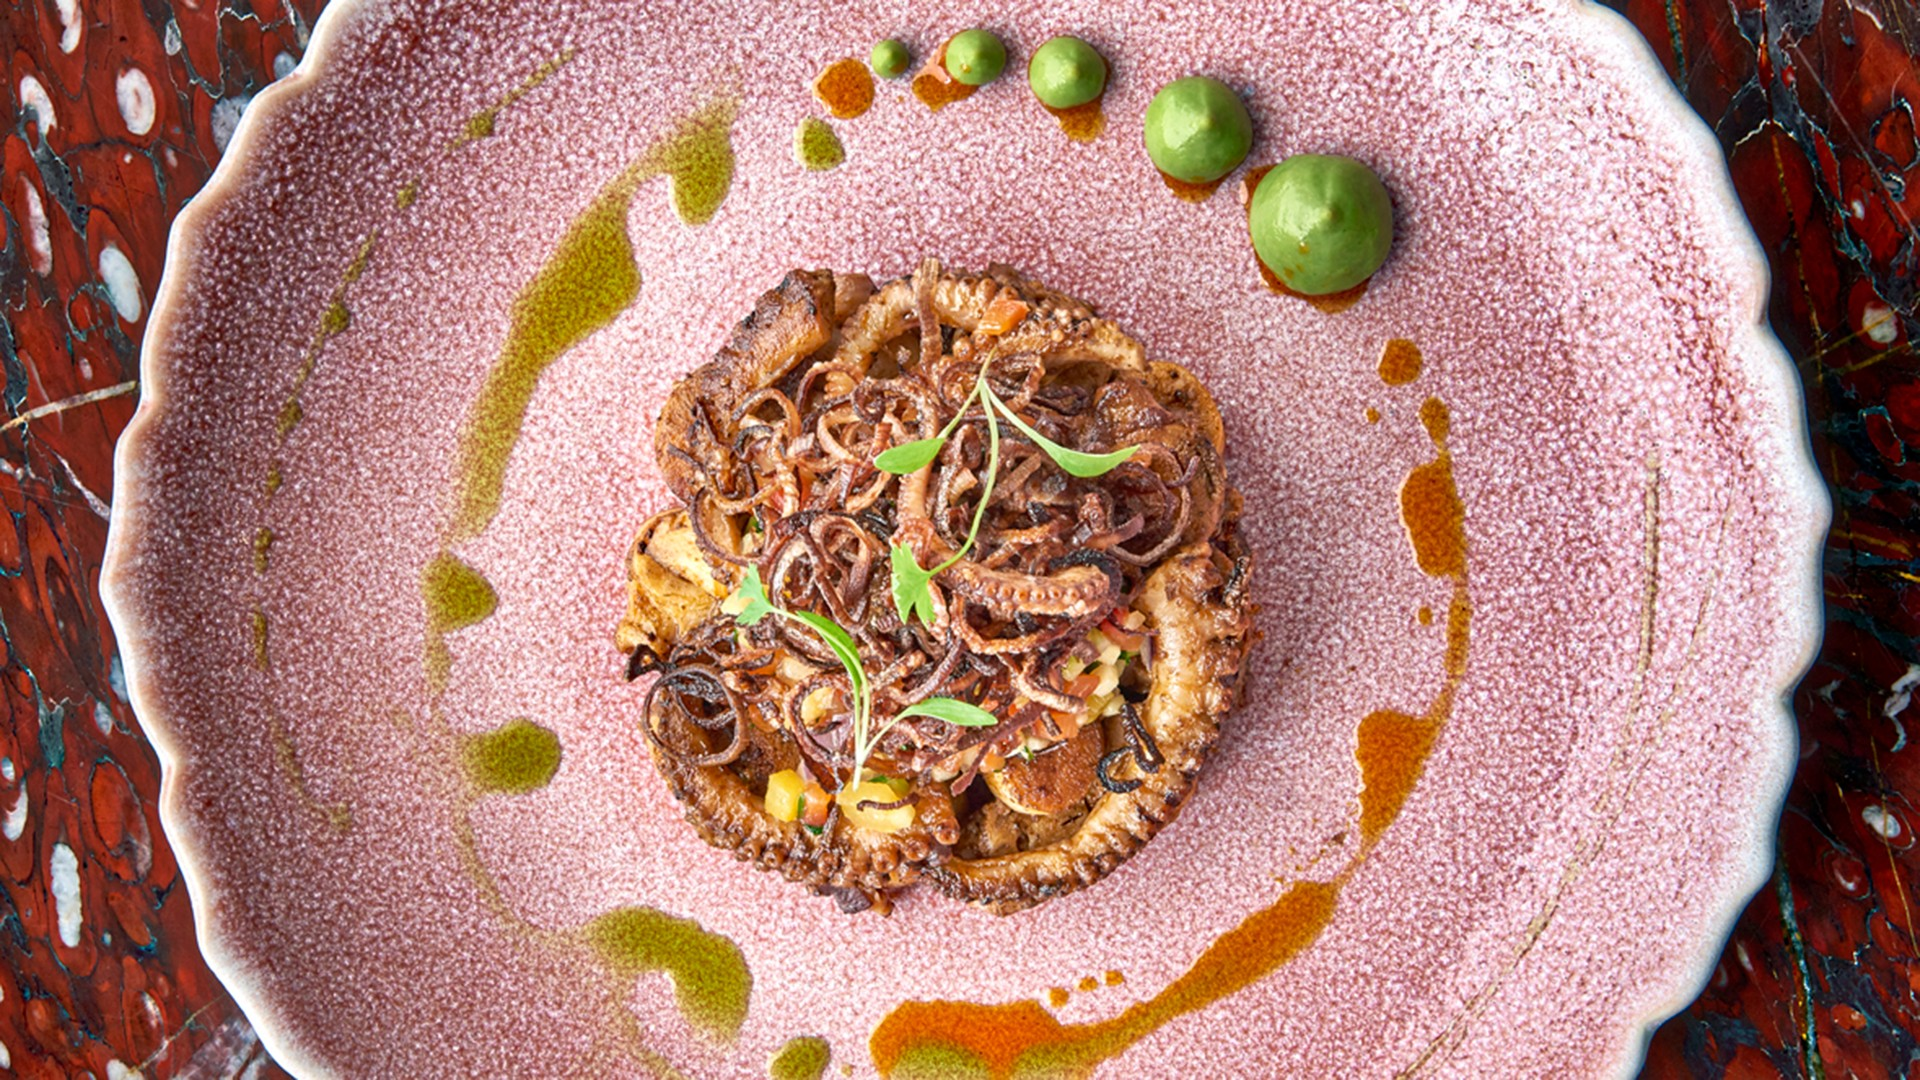 Ella Canta's octopus, smoked chile sauce and charred onion